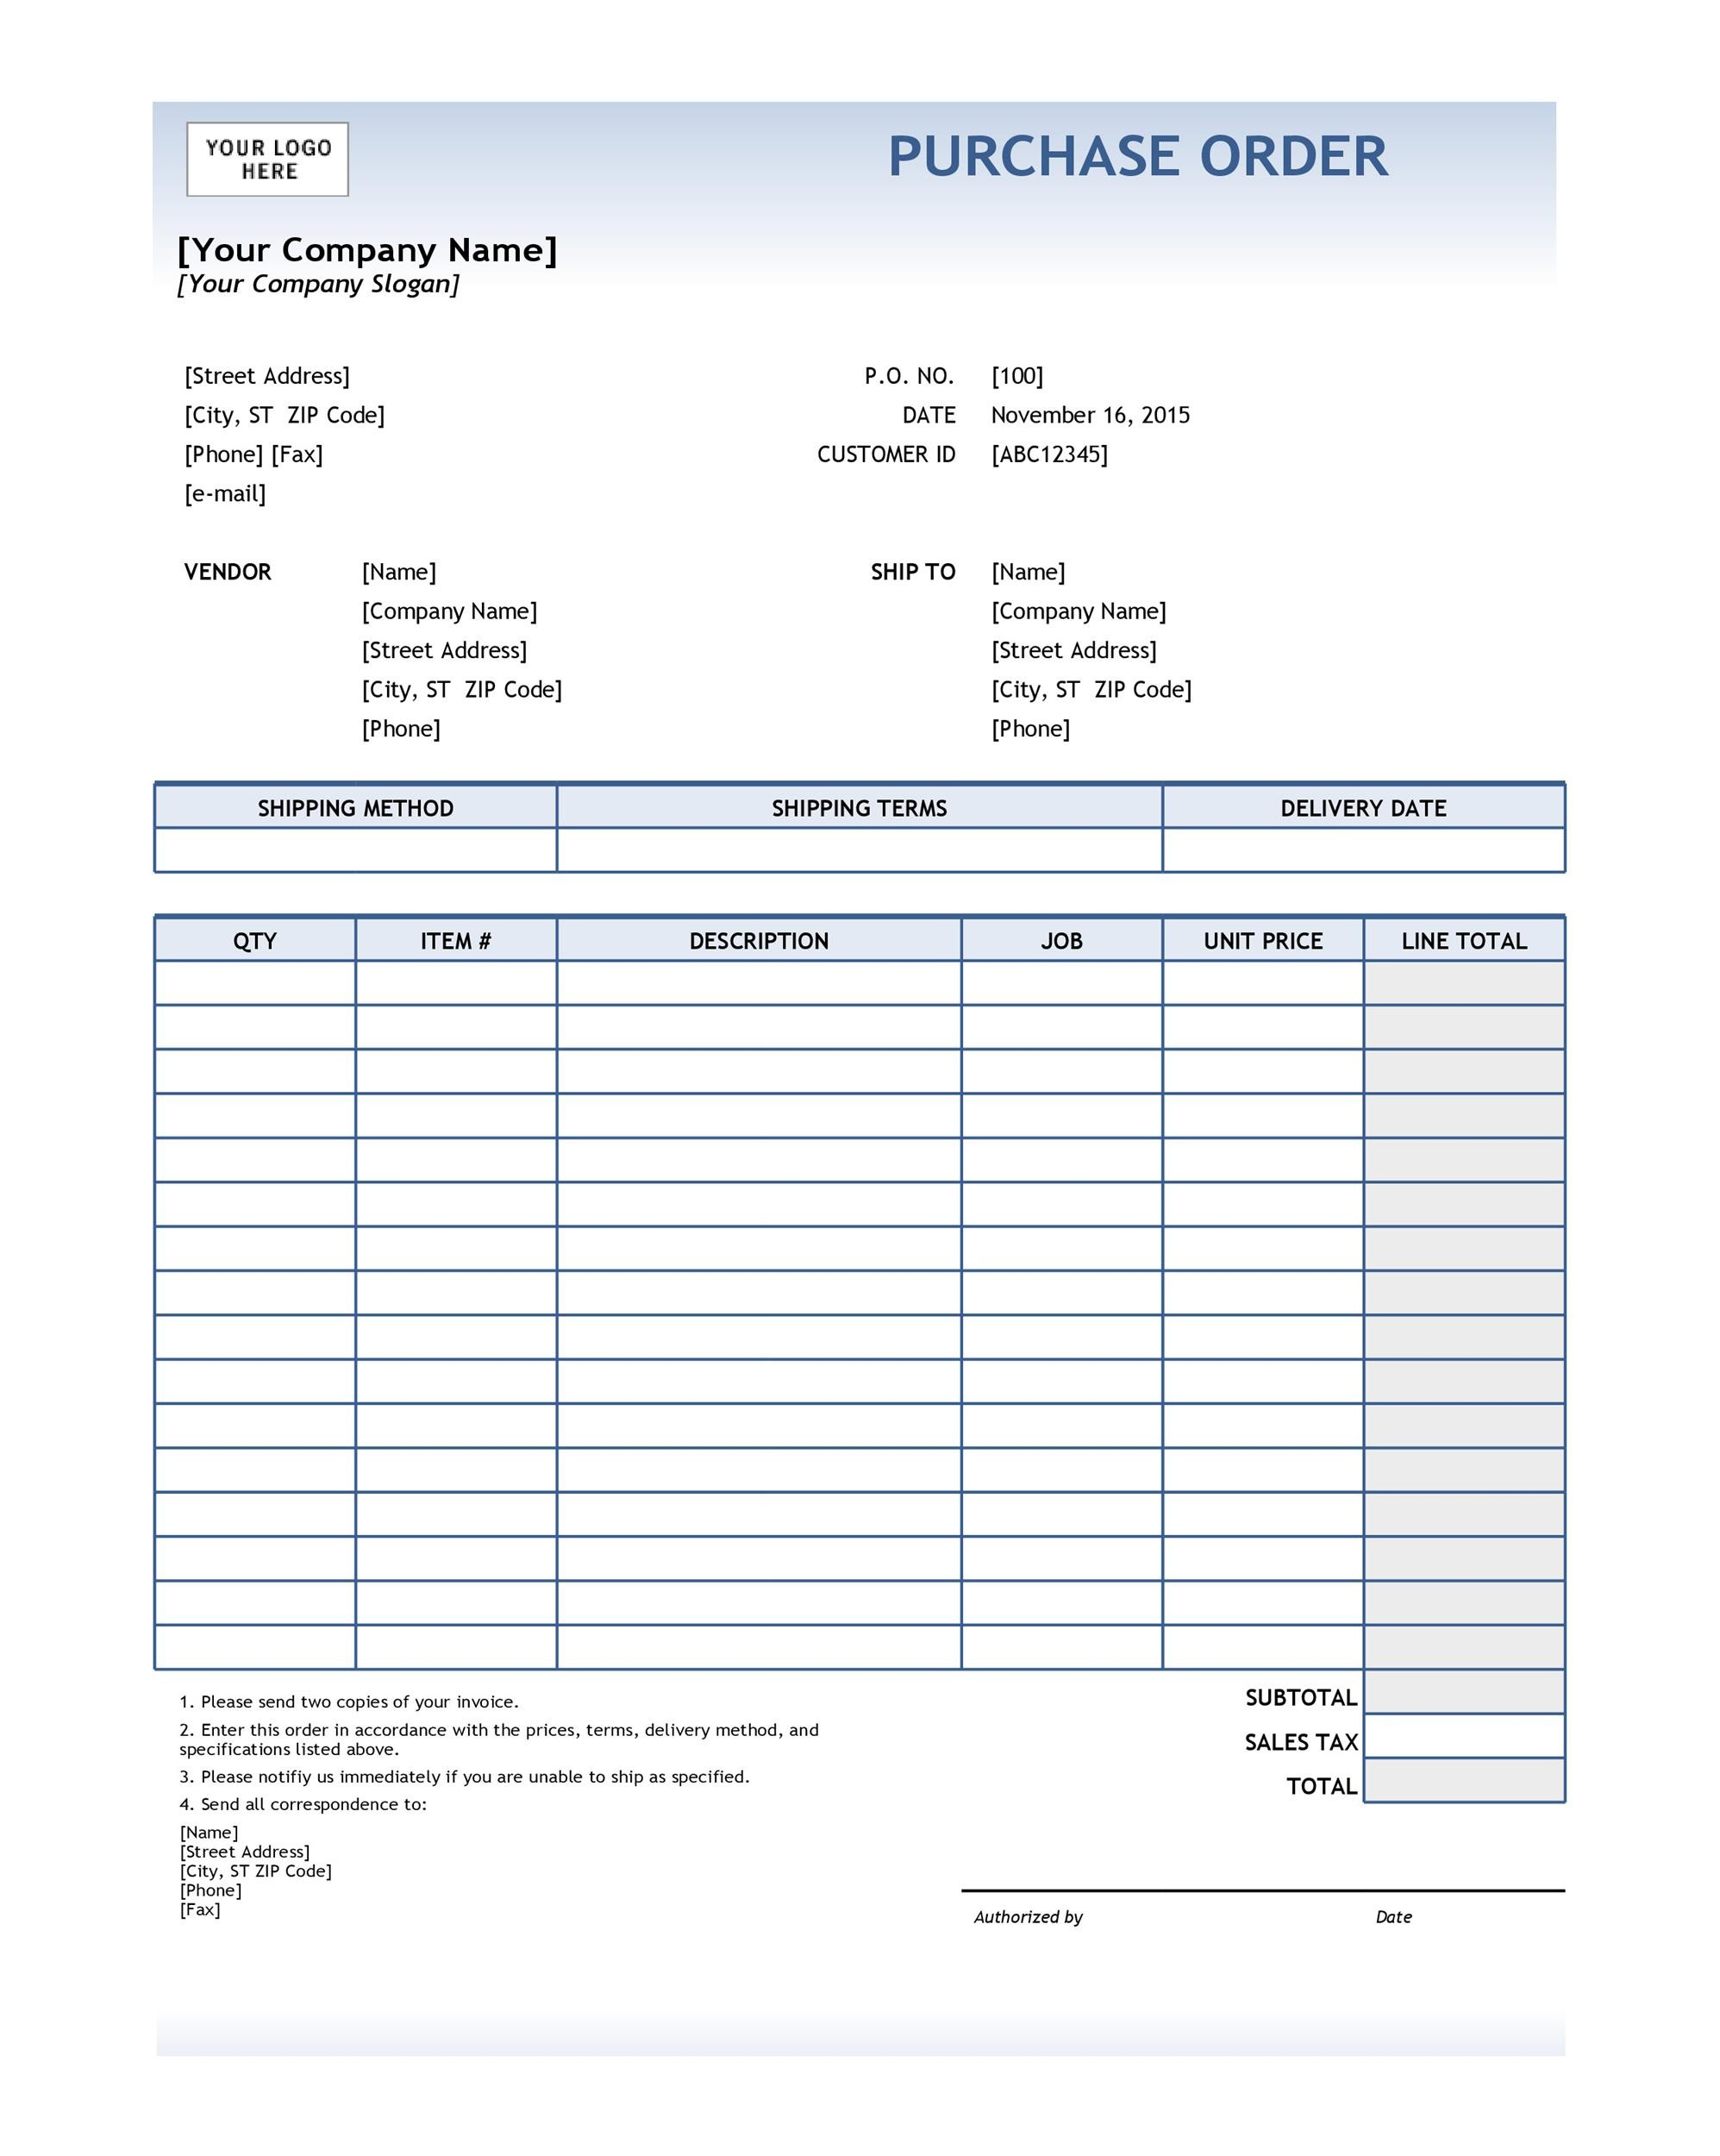 po form sample